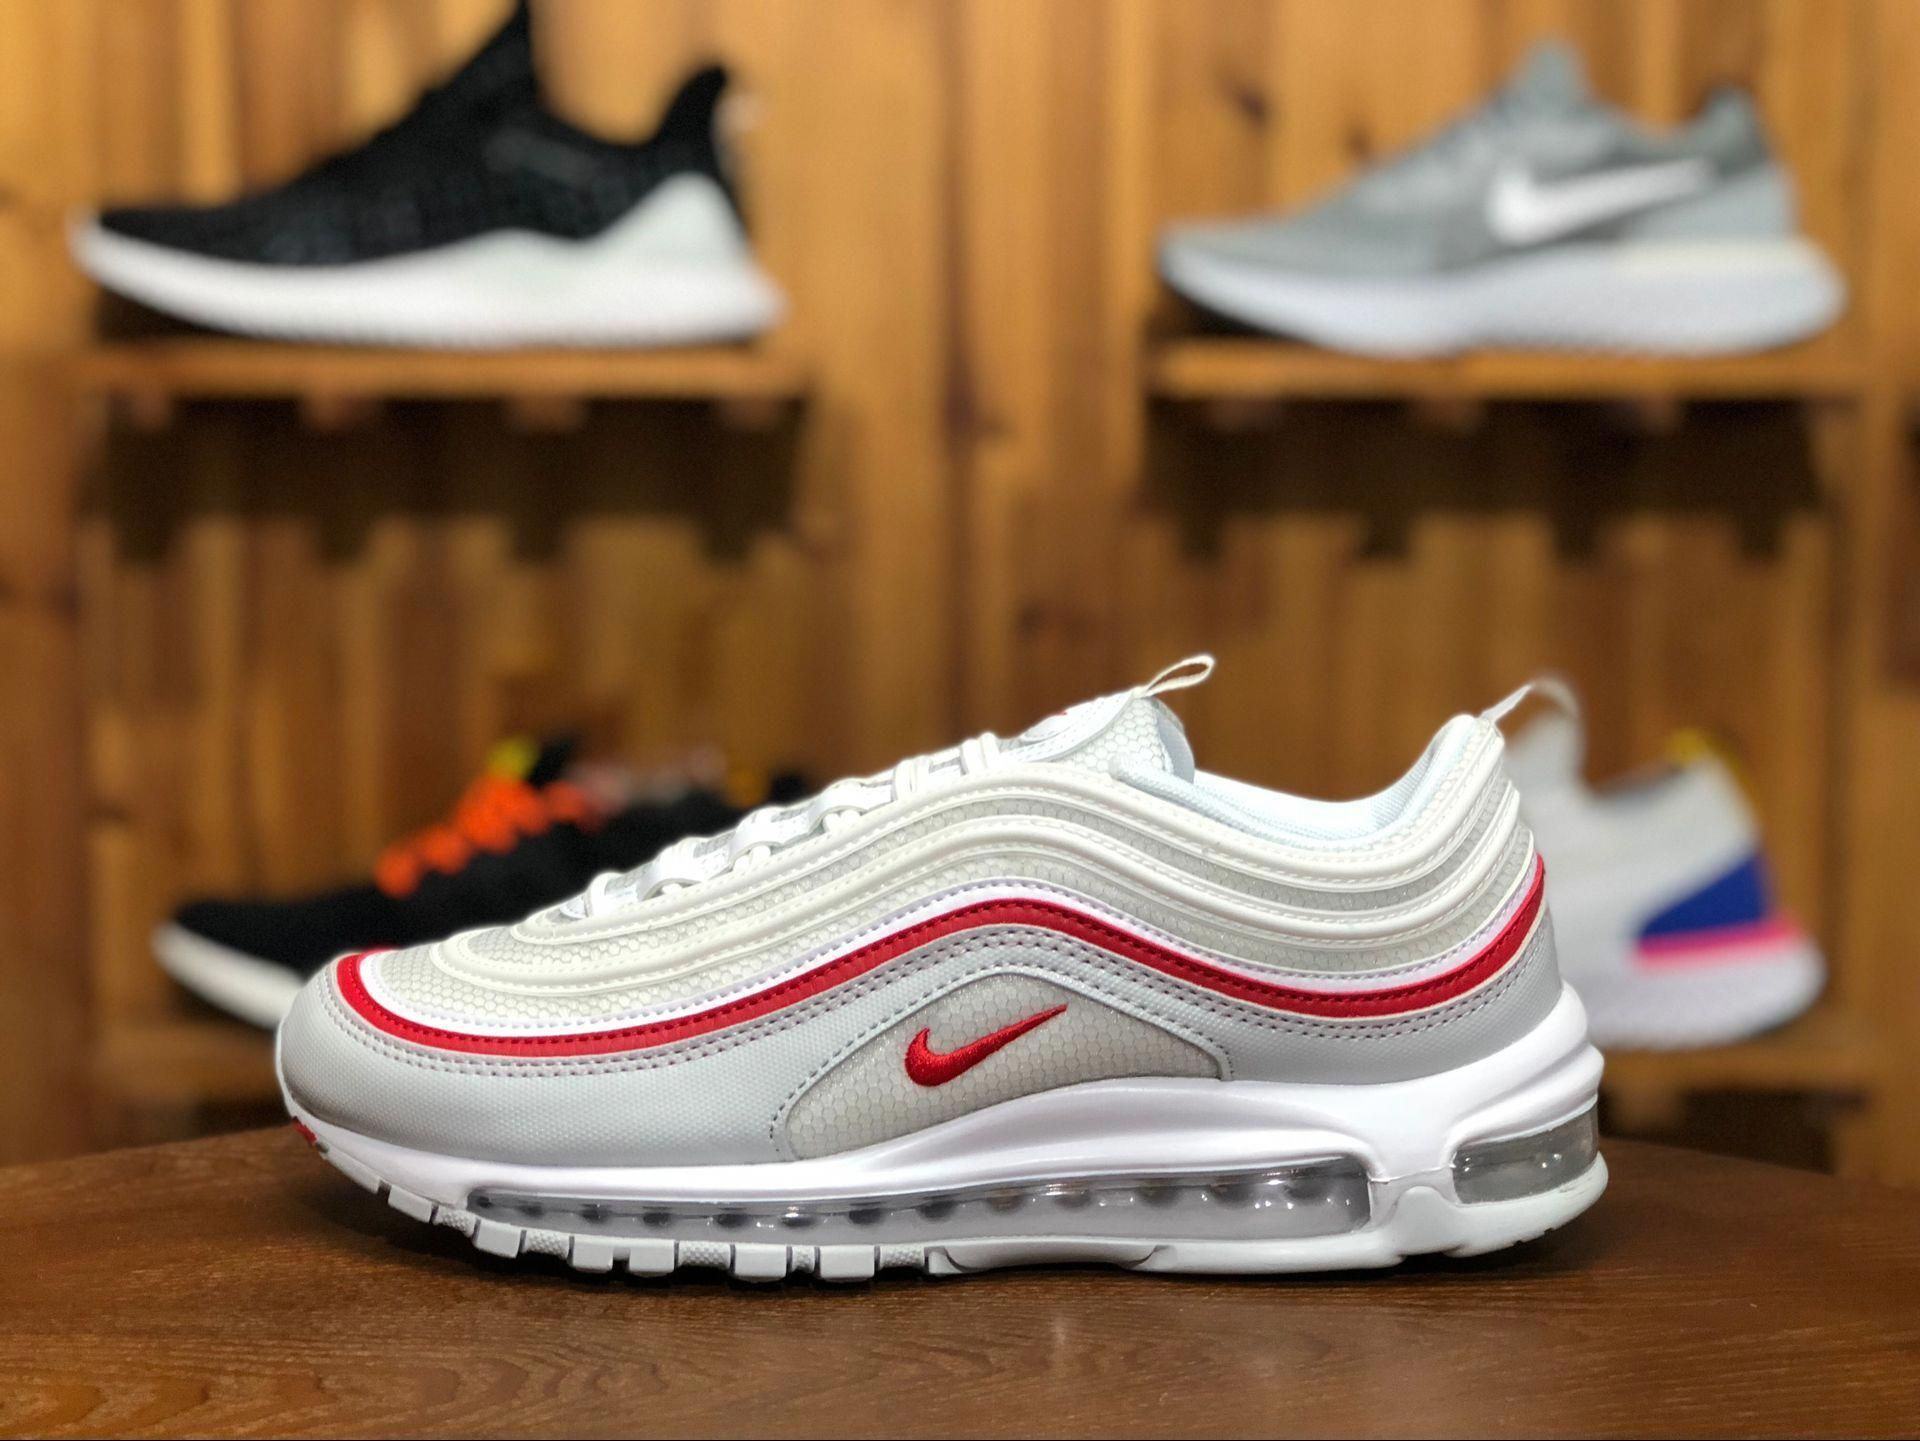 0df098e00c Nike Air Max 97 University Red Color:White/University Red Style Code: AR5531 -002 The all-white colourway is contrasted by a red coloured stripe which  ...